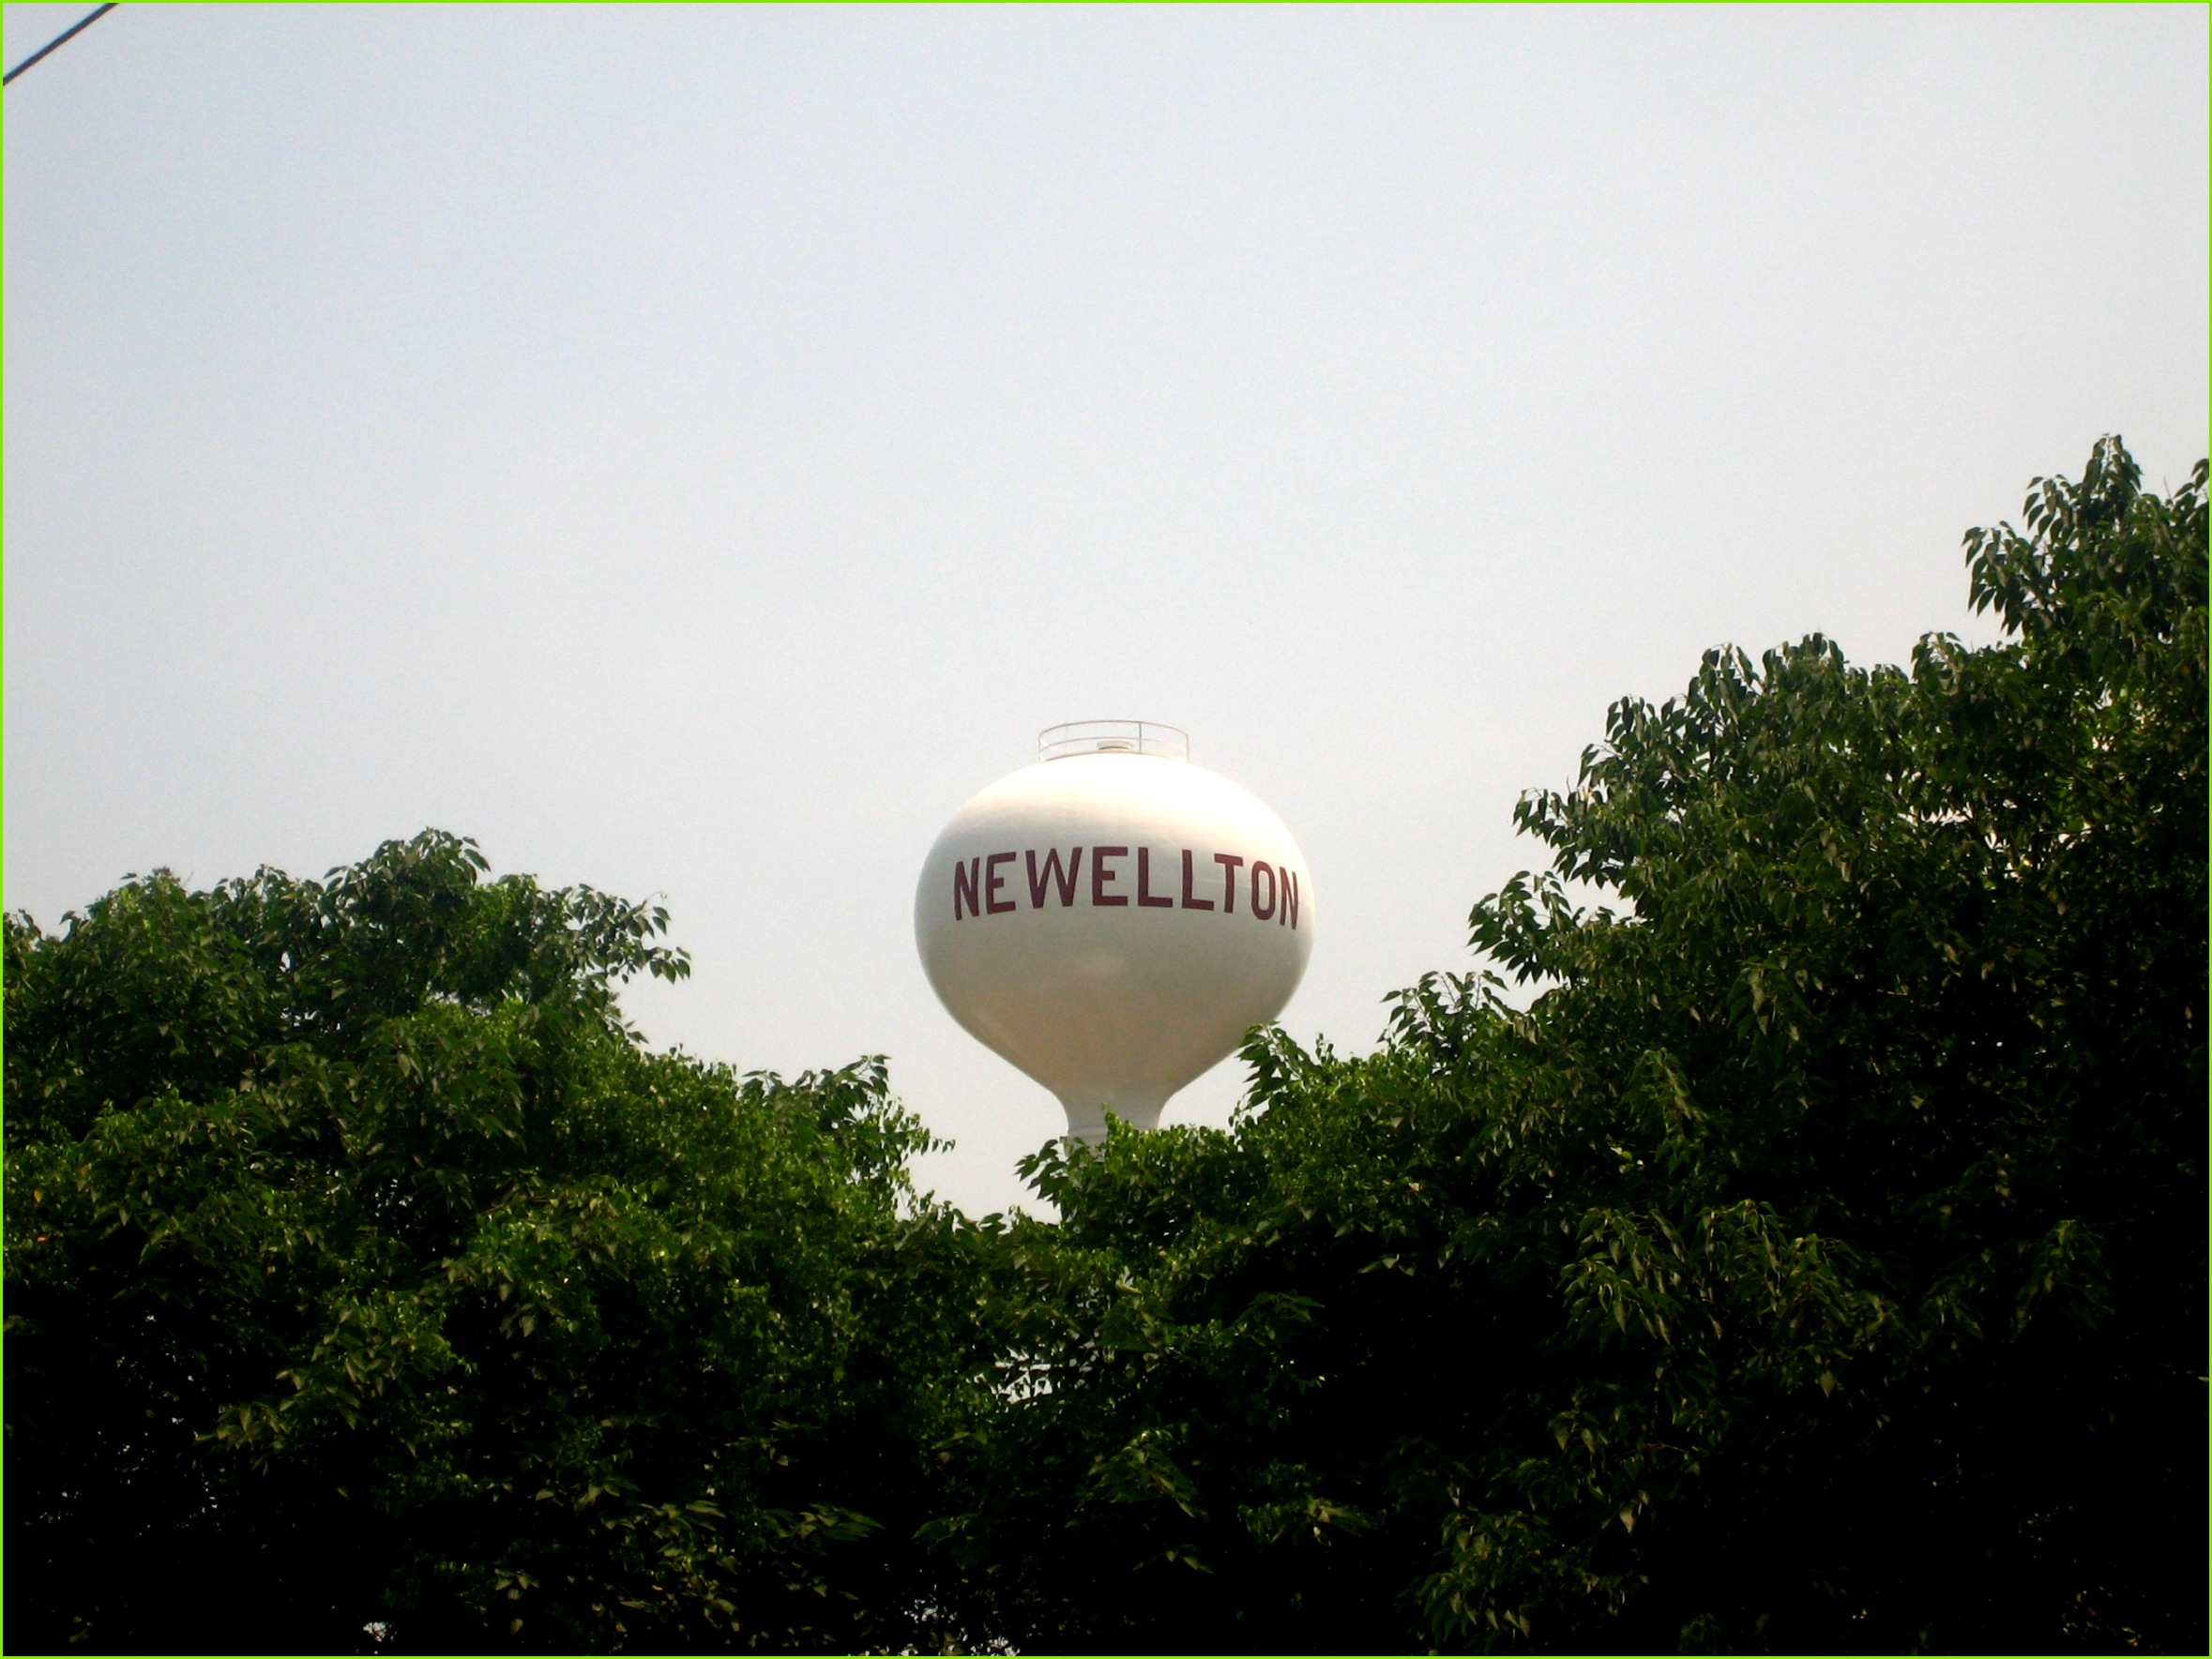 Newellton LA Water Tower IMG 1272 JPG